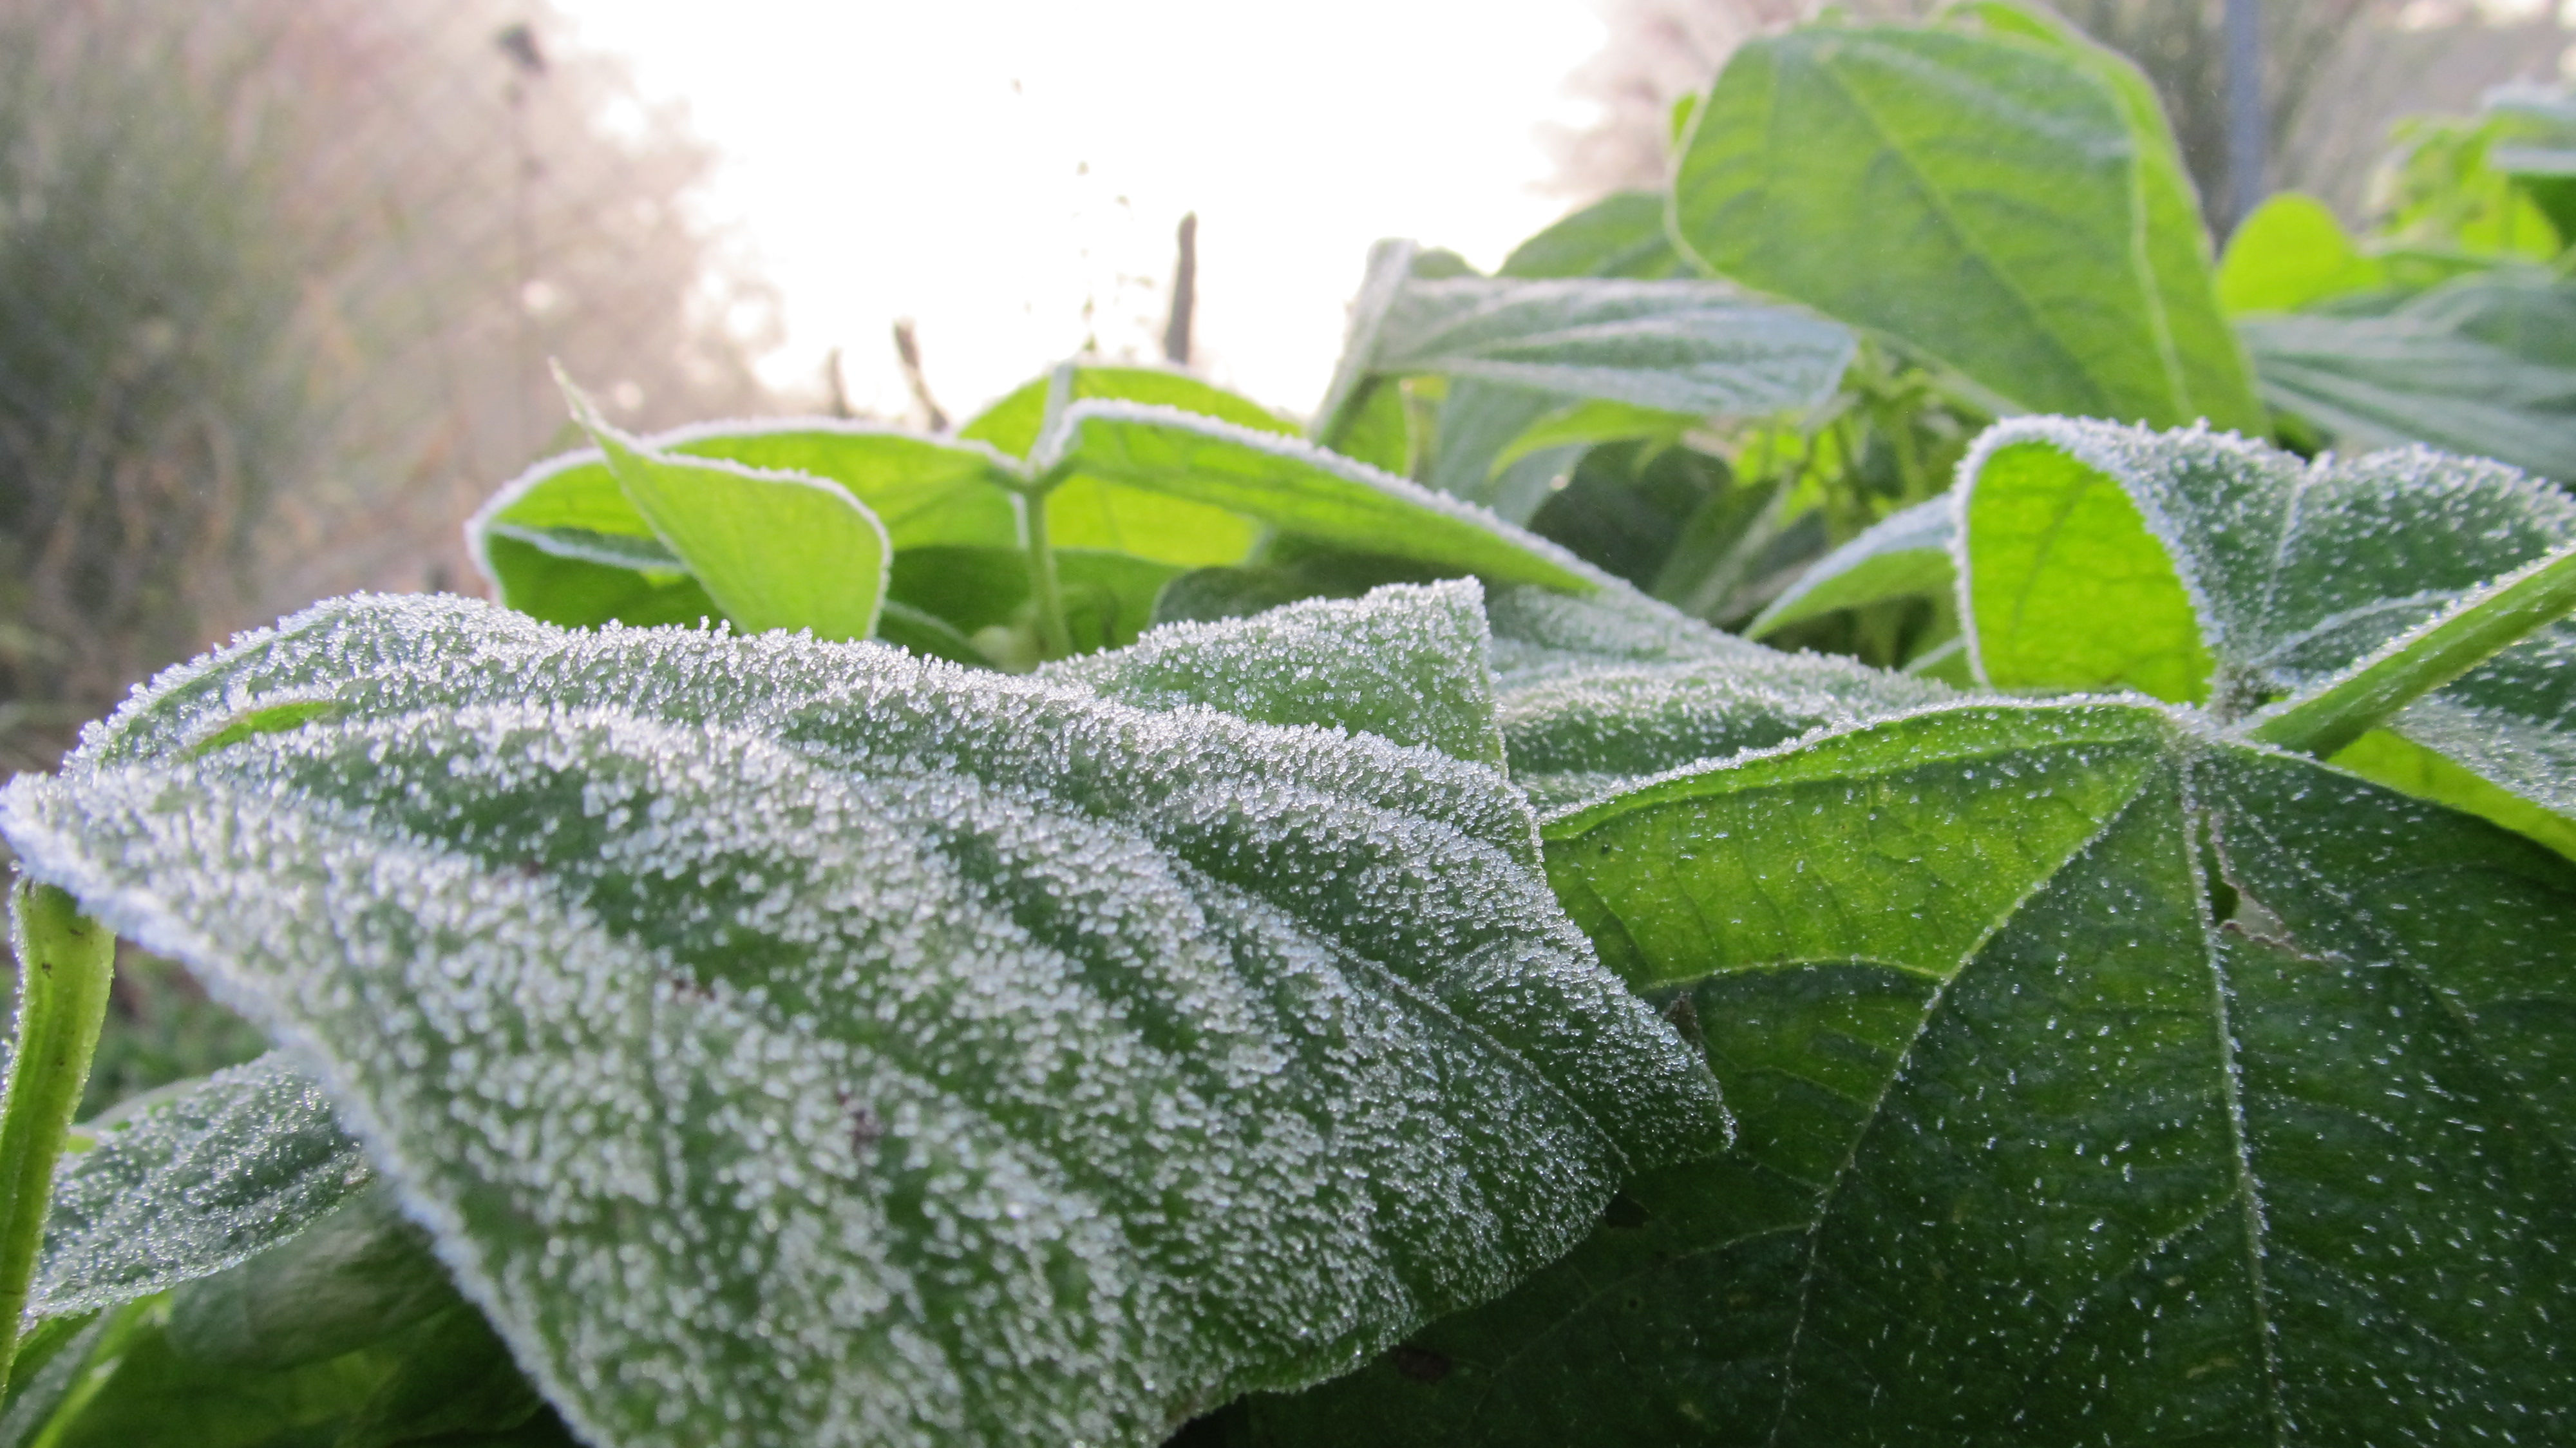 Frost on crops